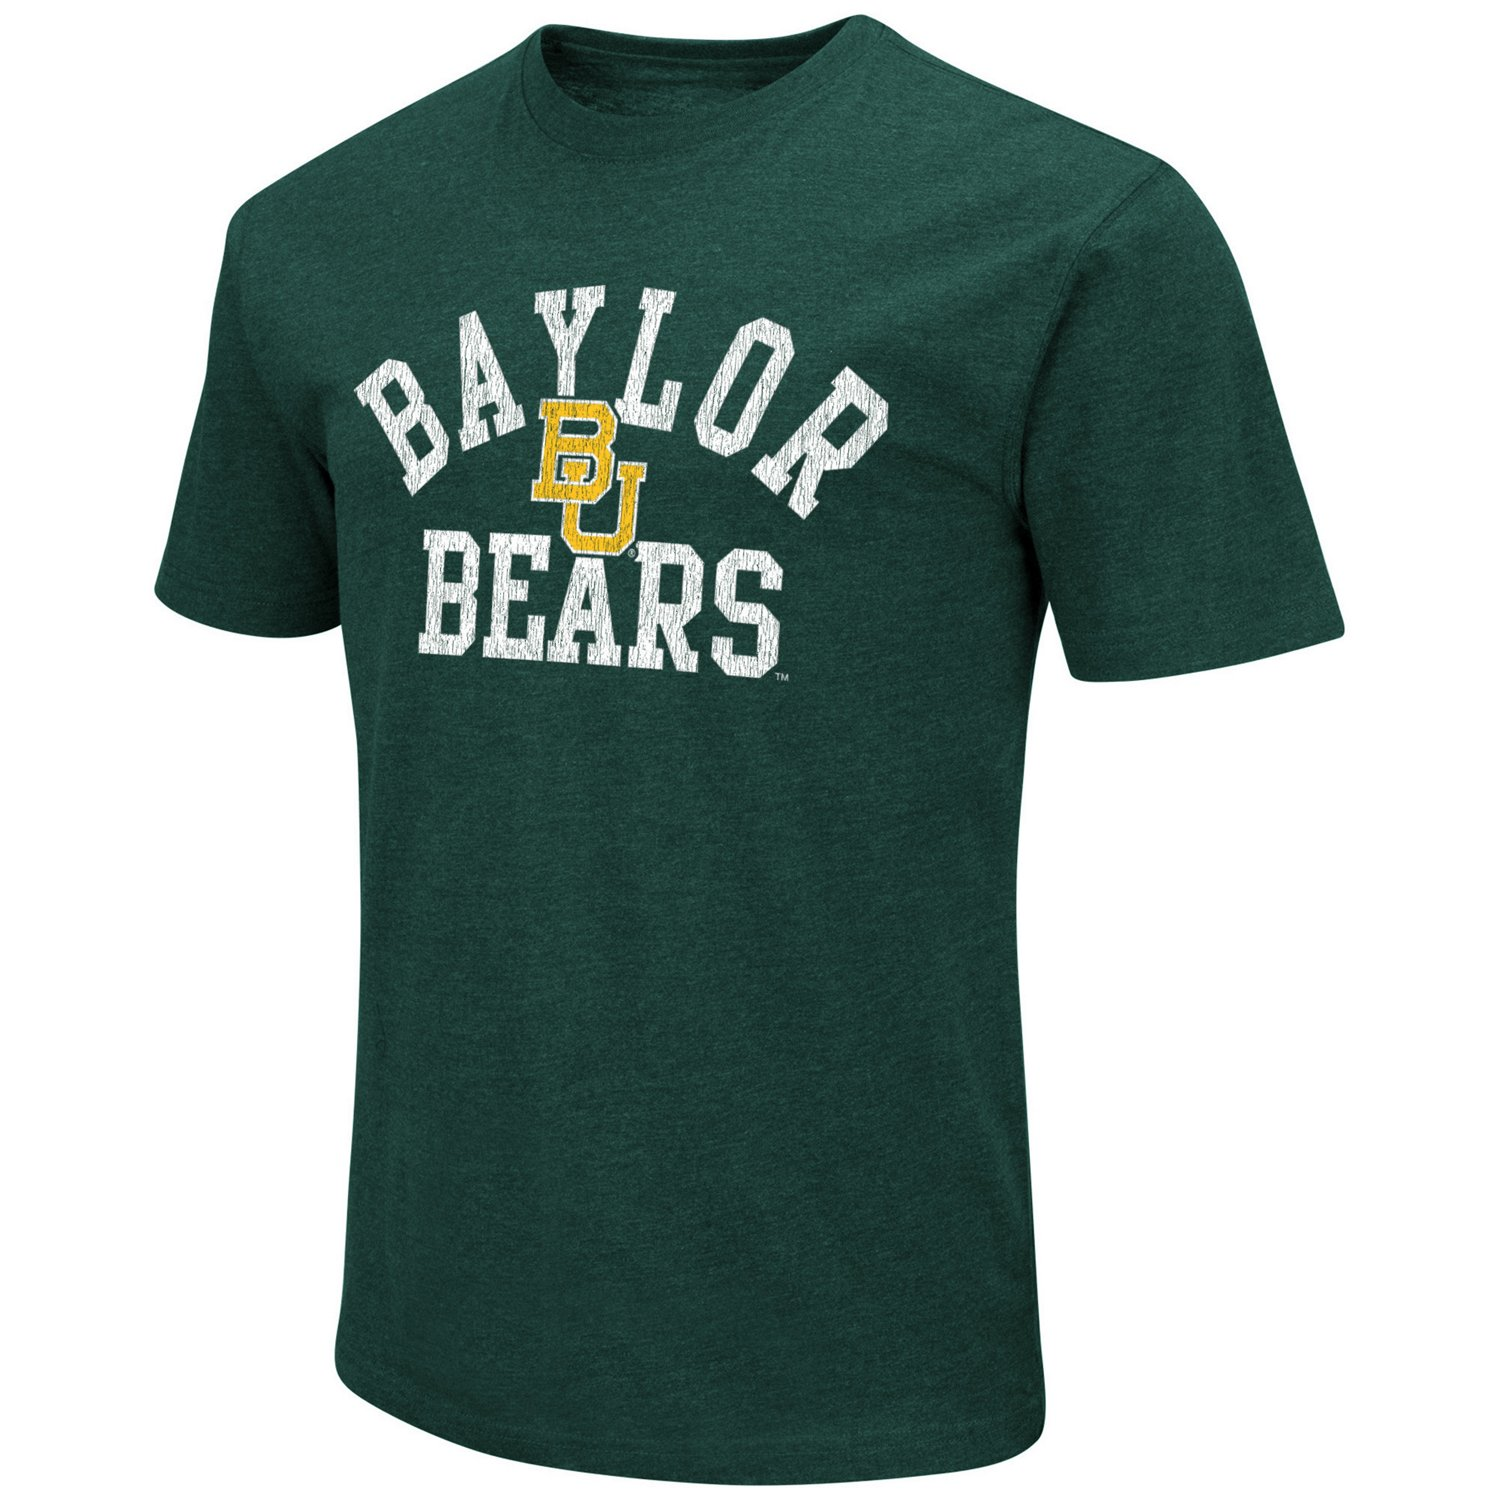 Colosseum Athletics Men's Baylor University Vintage T-shirt